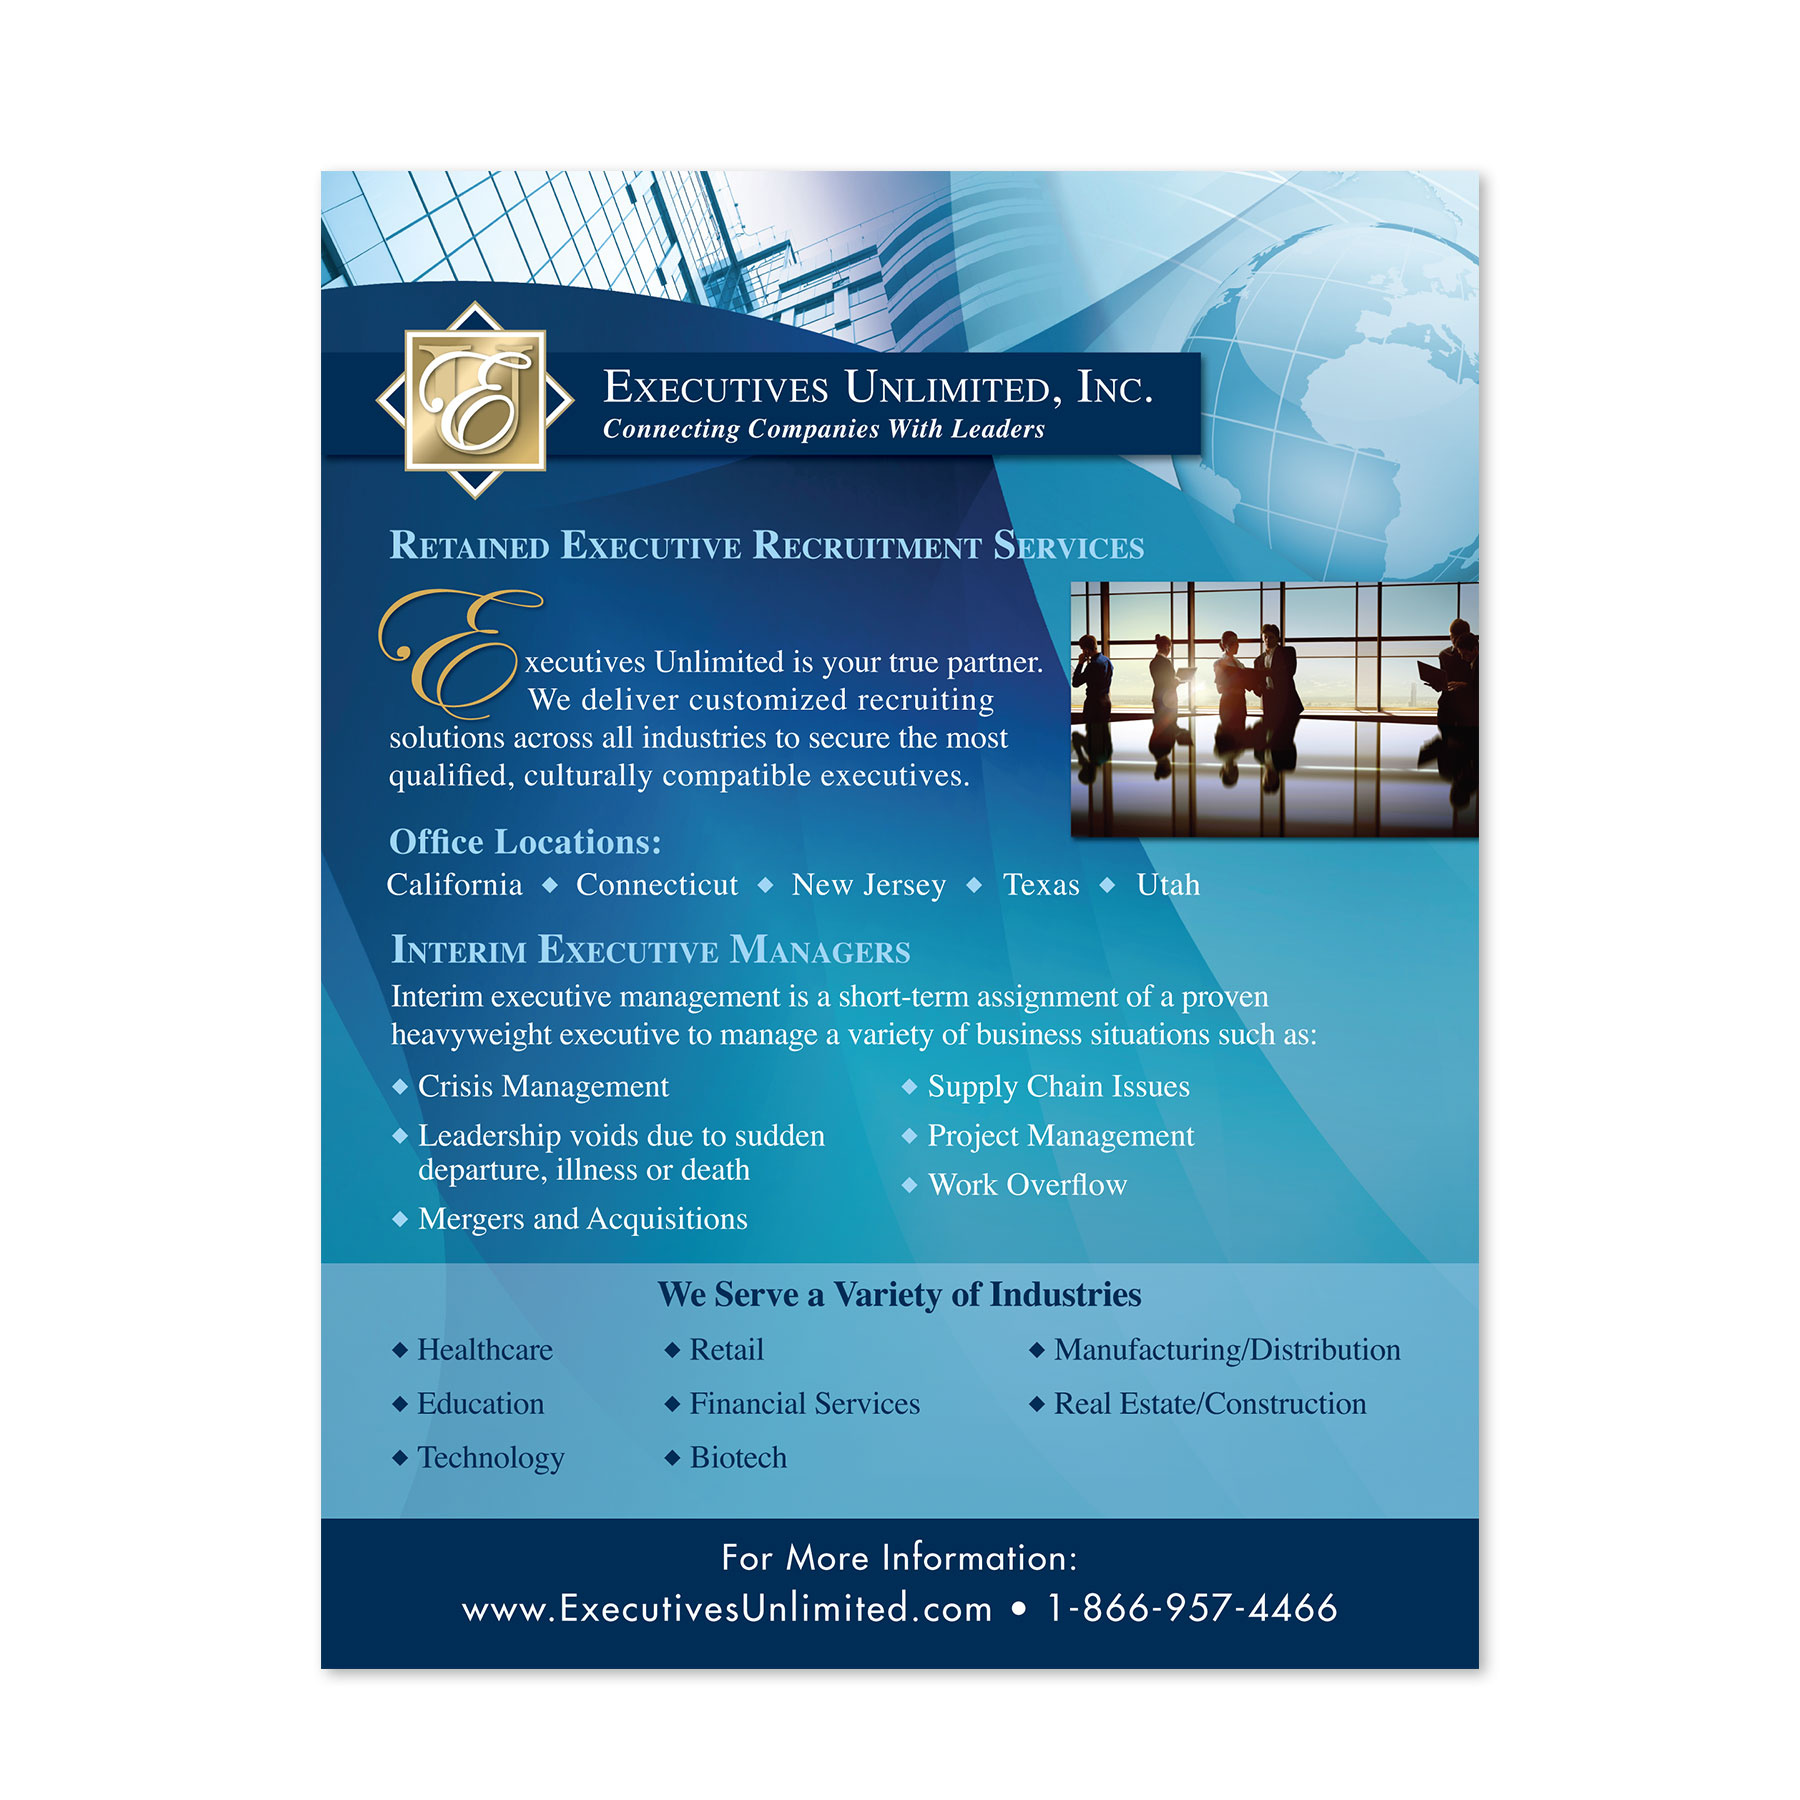 Executives Unlimited EMail Brochure